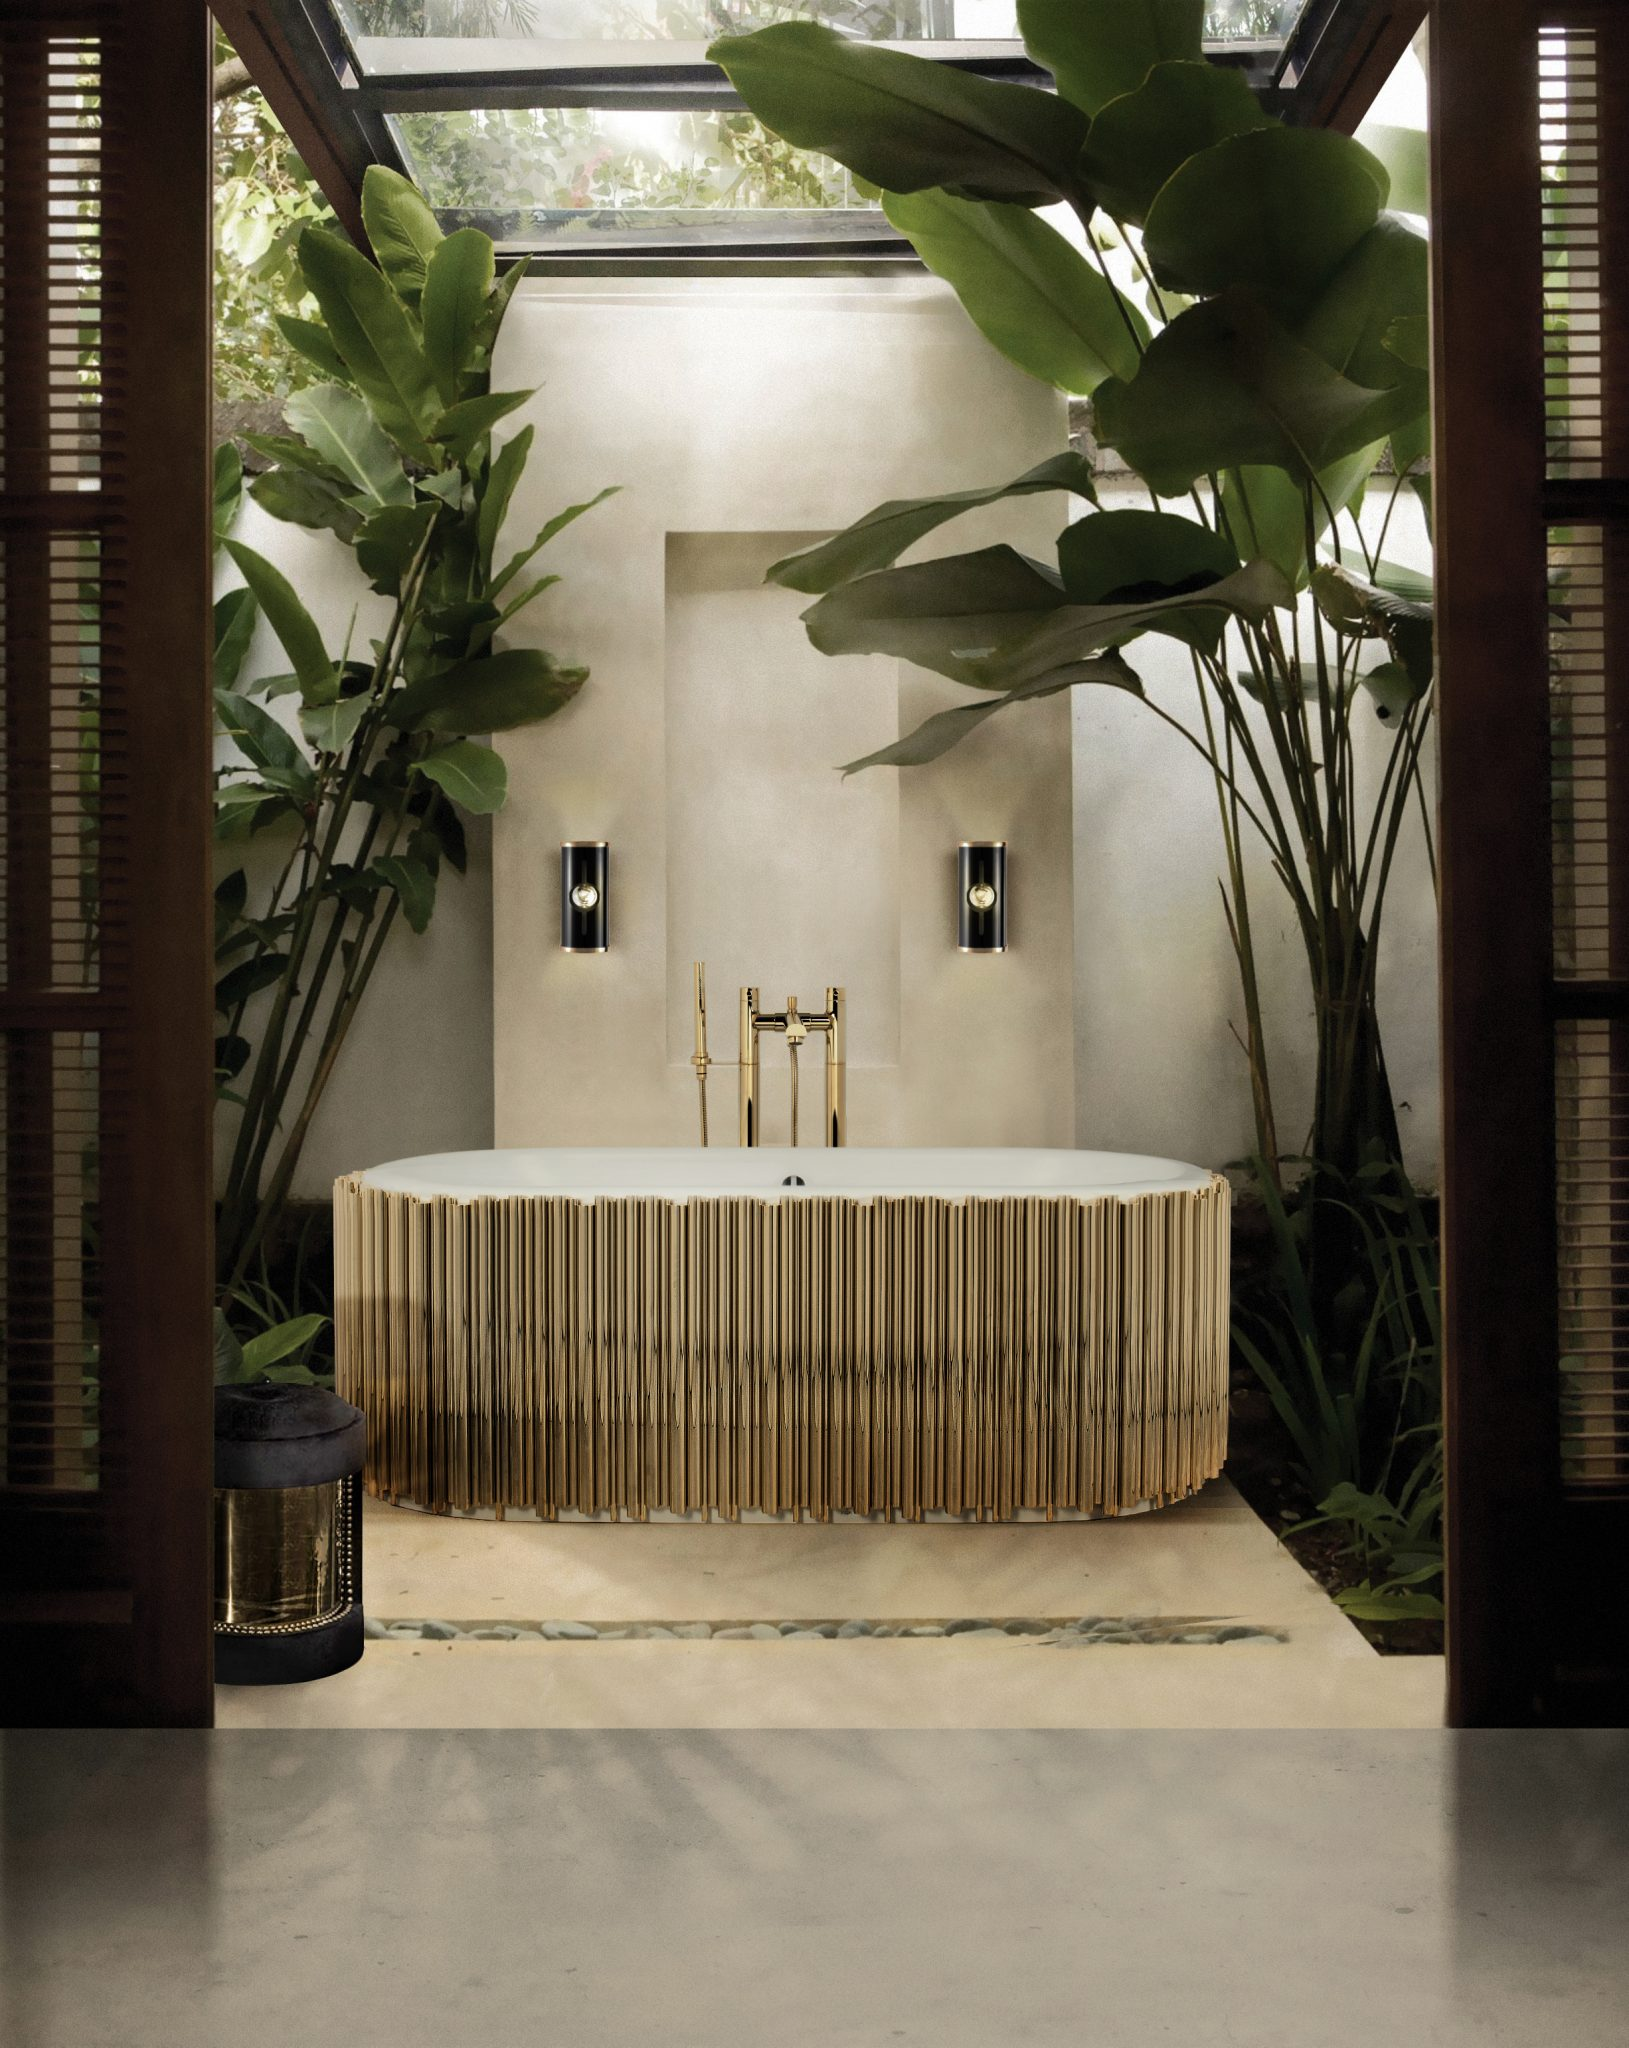 DISCOVER THE LUXURY YOU CAN GET TO YOUR BATHROOM WITH PIECES FROM DELIGHTFULL